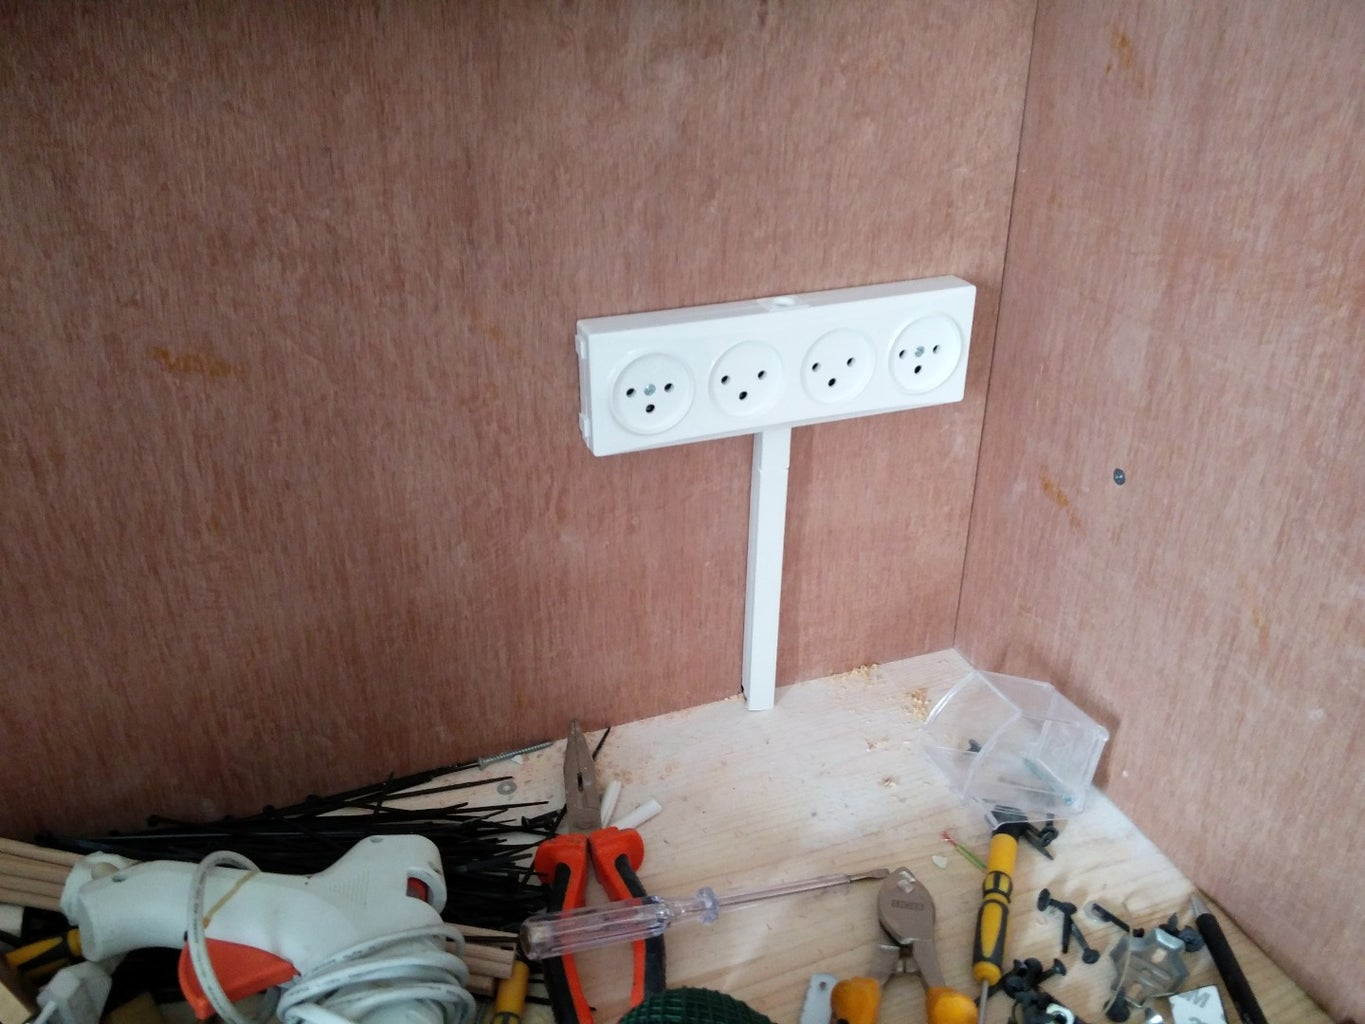 Create a Power Outlet Strip